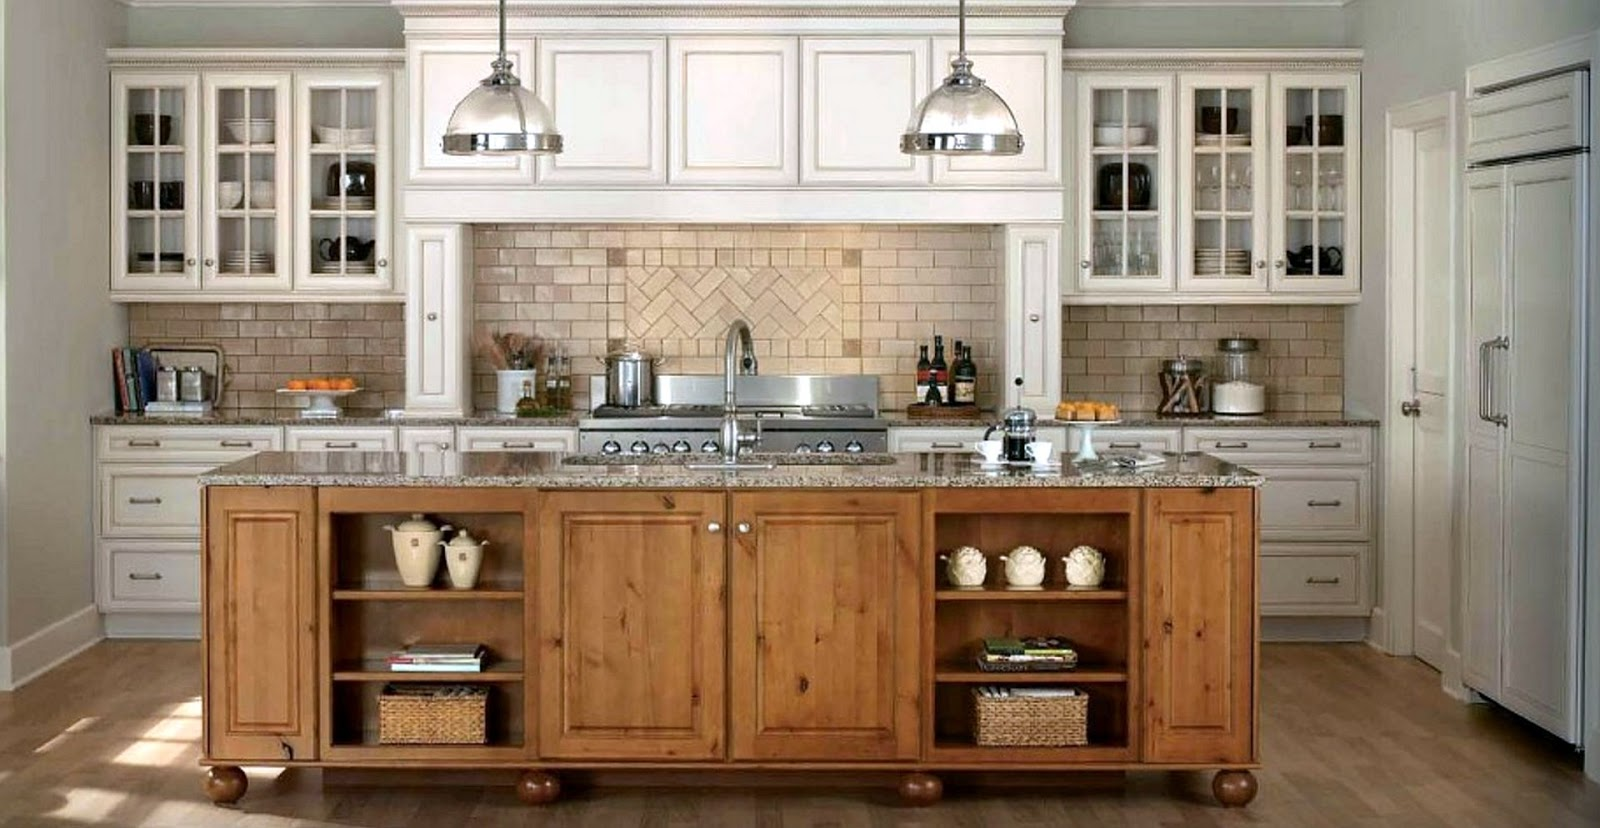 tips for choosing minimalist hanging kitchen cabinets